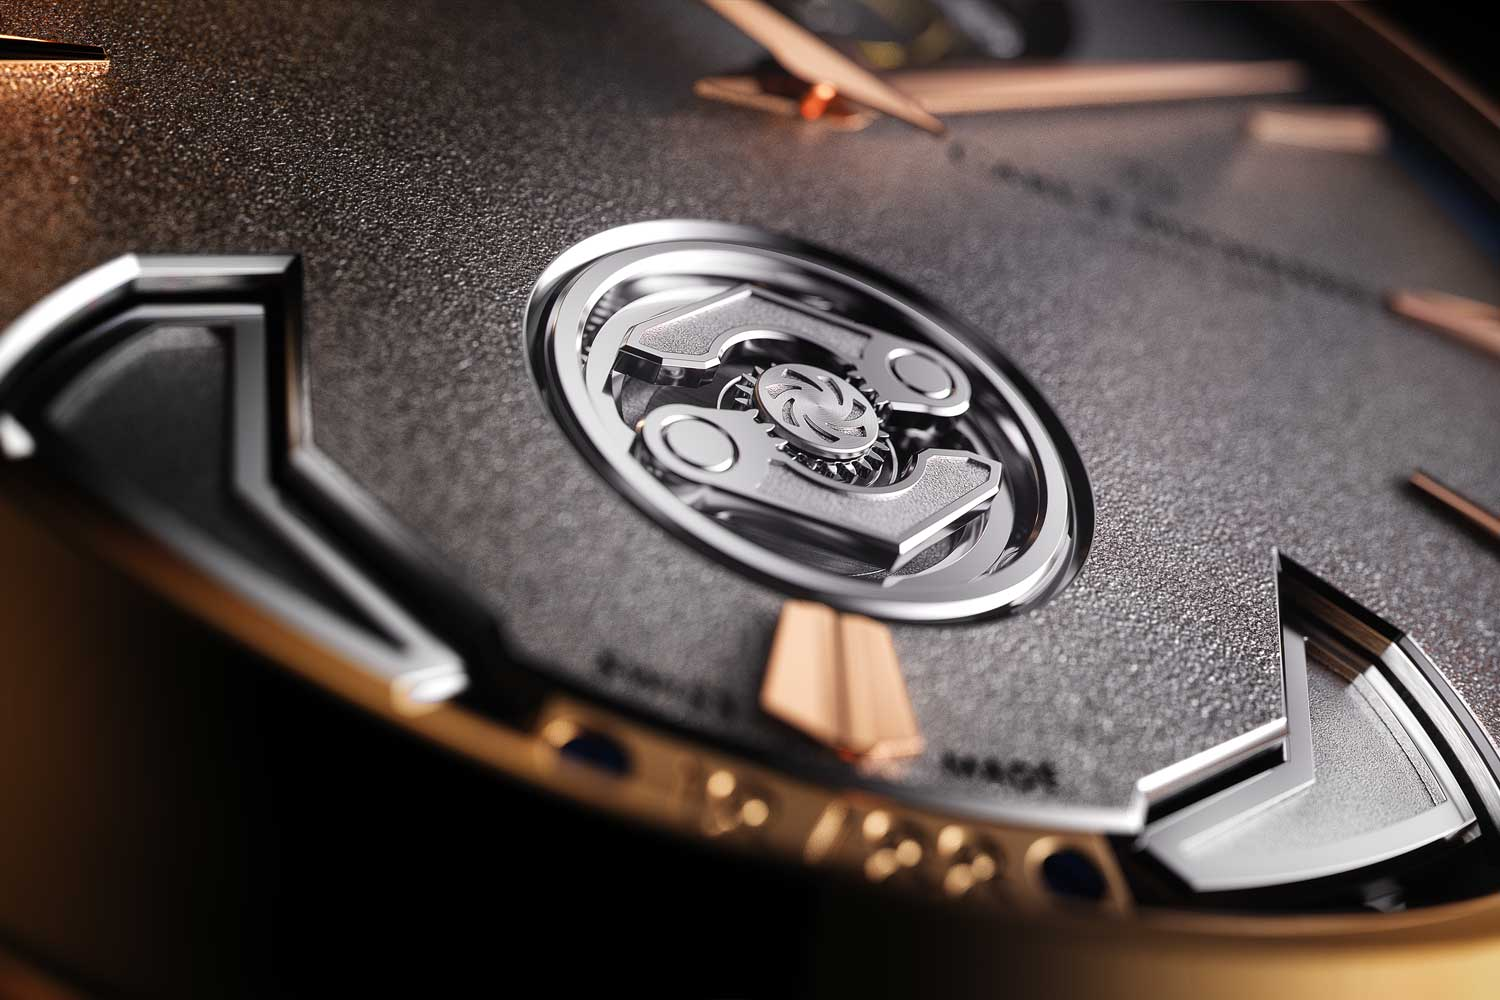 """Introduced at Watches and Wonders 2021, the Manero Minute Repeater Symphony boasts not only Carl F. Bucherer's Peripheral Winding System and floating Peripheral Tourbillon but also a third peripheral mechanism, the watch's COSC certified Calibre CFB MR3000 is """"Triple Peripheral""""."""